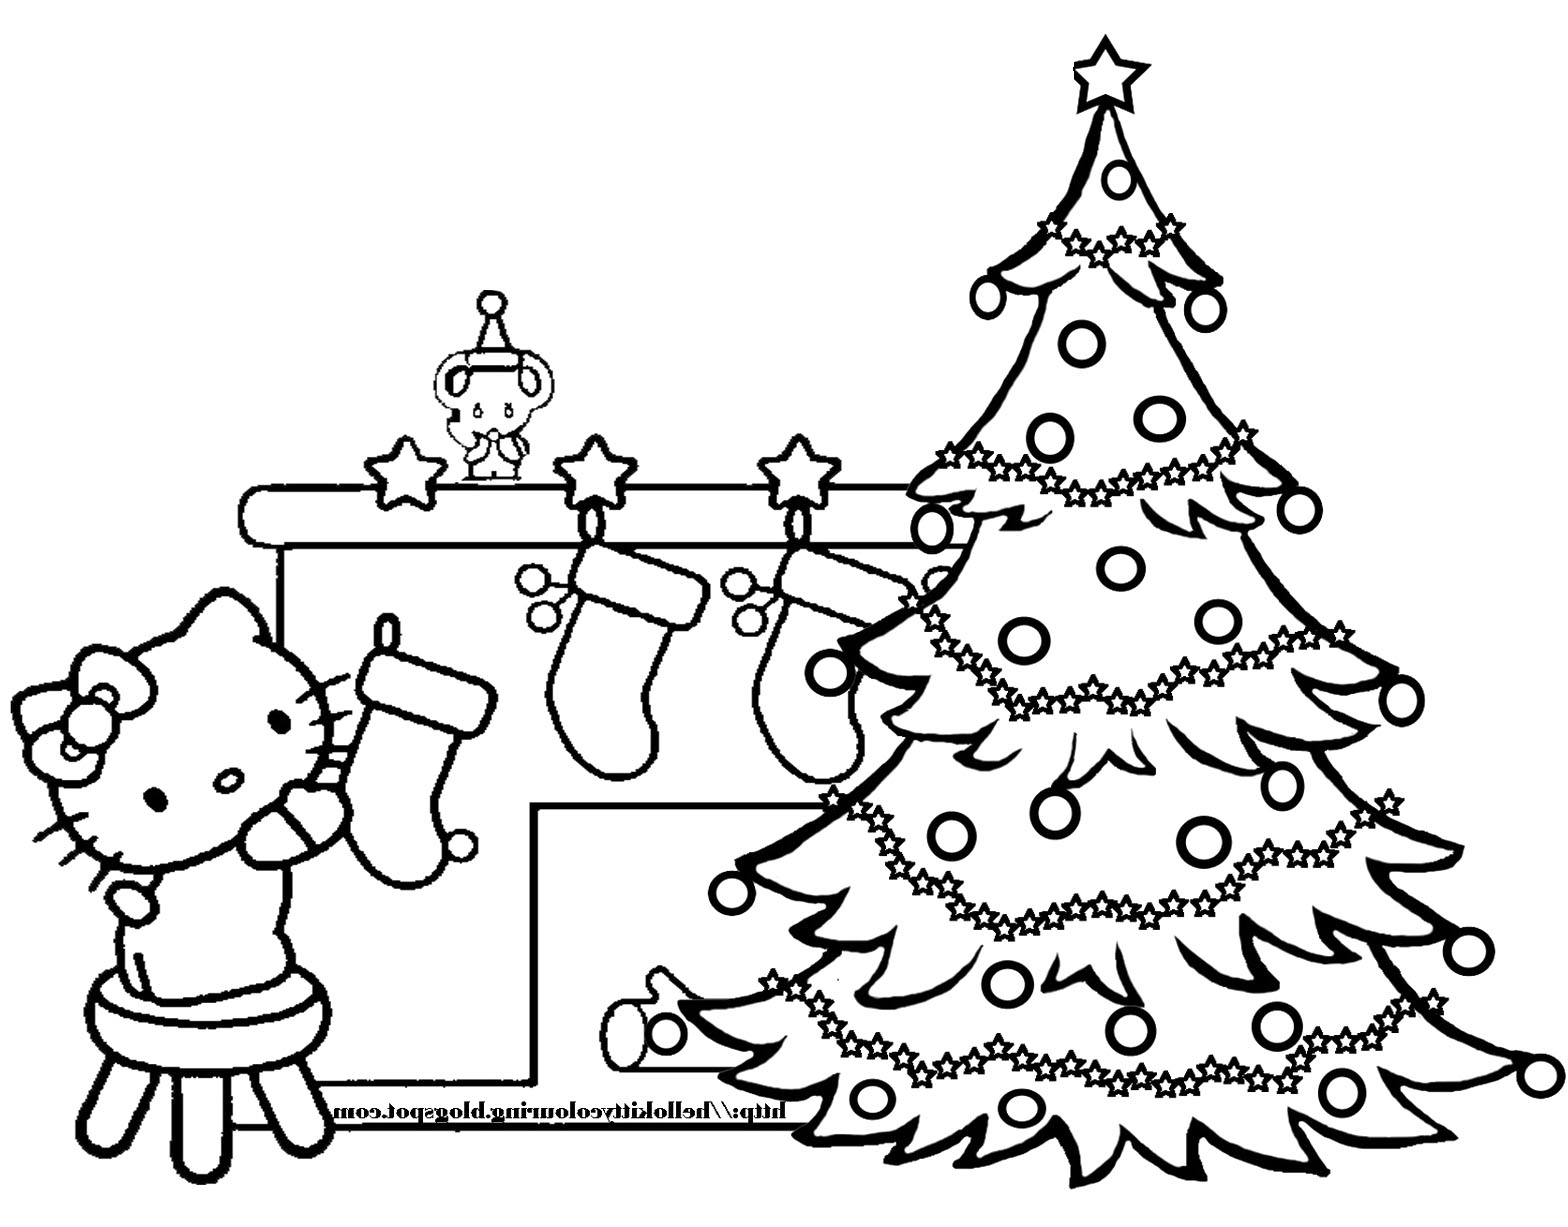 1568x1227 Christmas Tree With Presents Coloring Pages For Kids